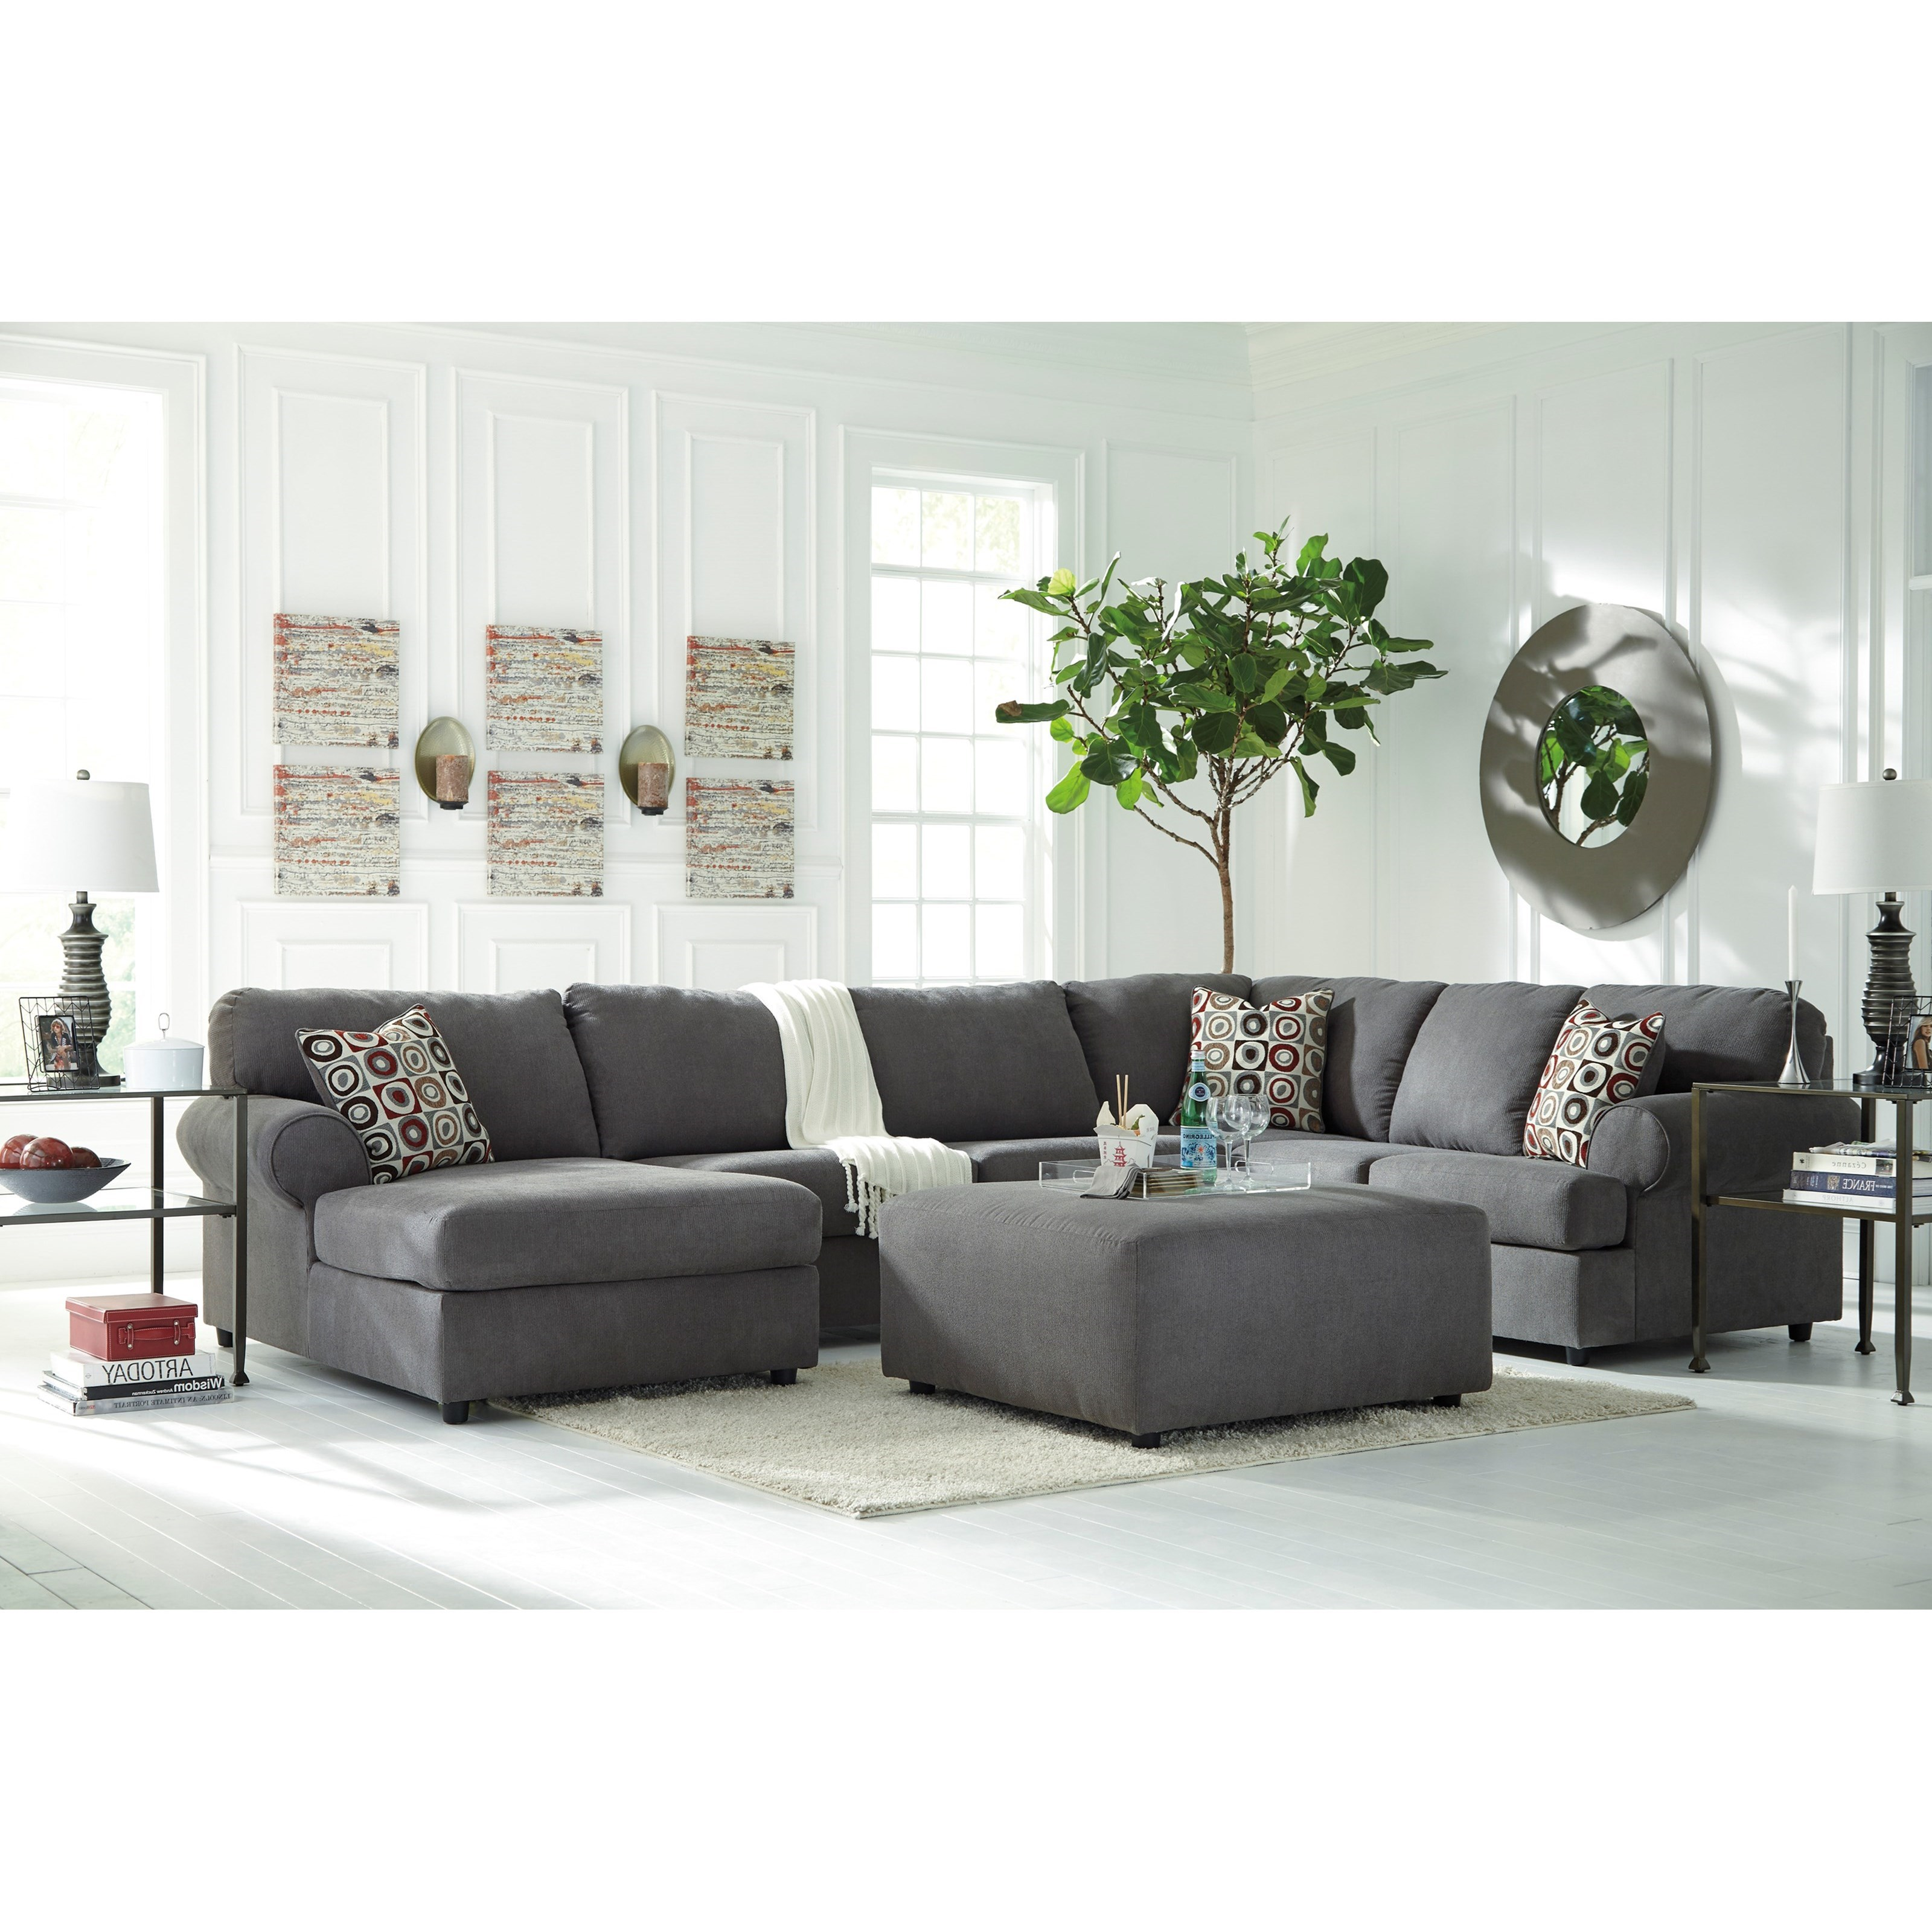 Furniture By Ashley: Signature Design By Ashley Jayceon 3-Piece Sectional With